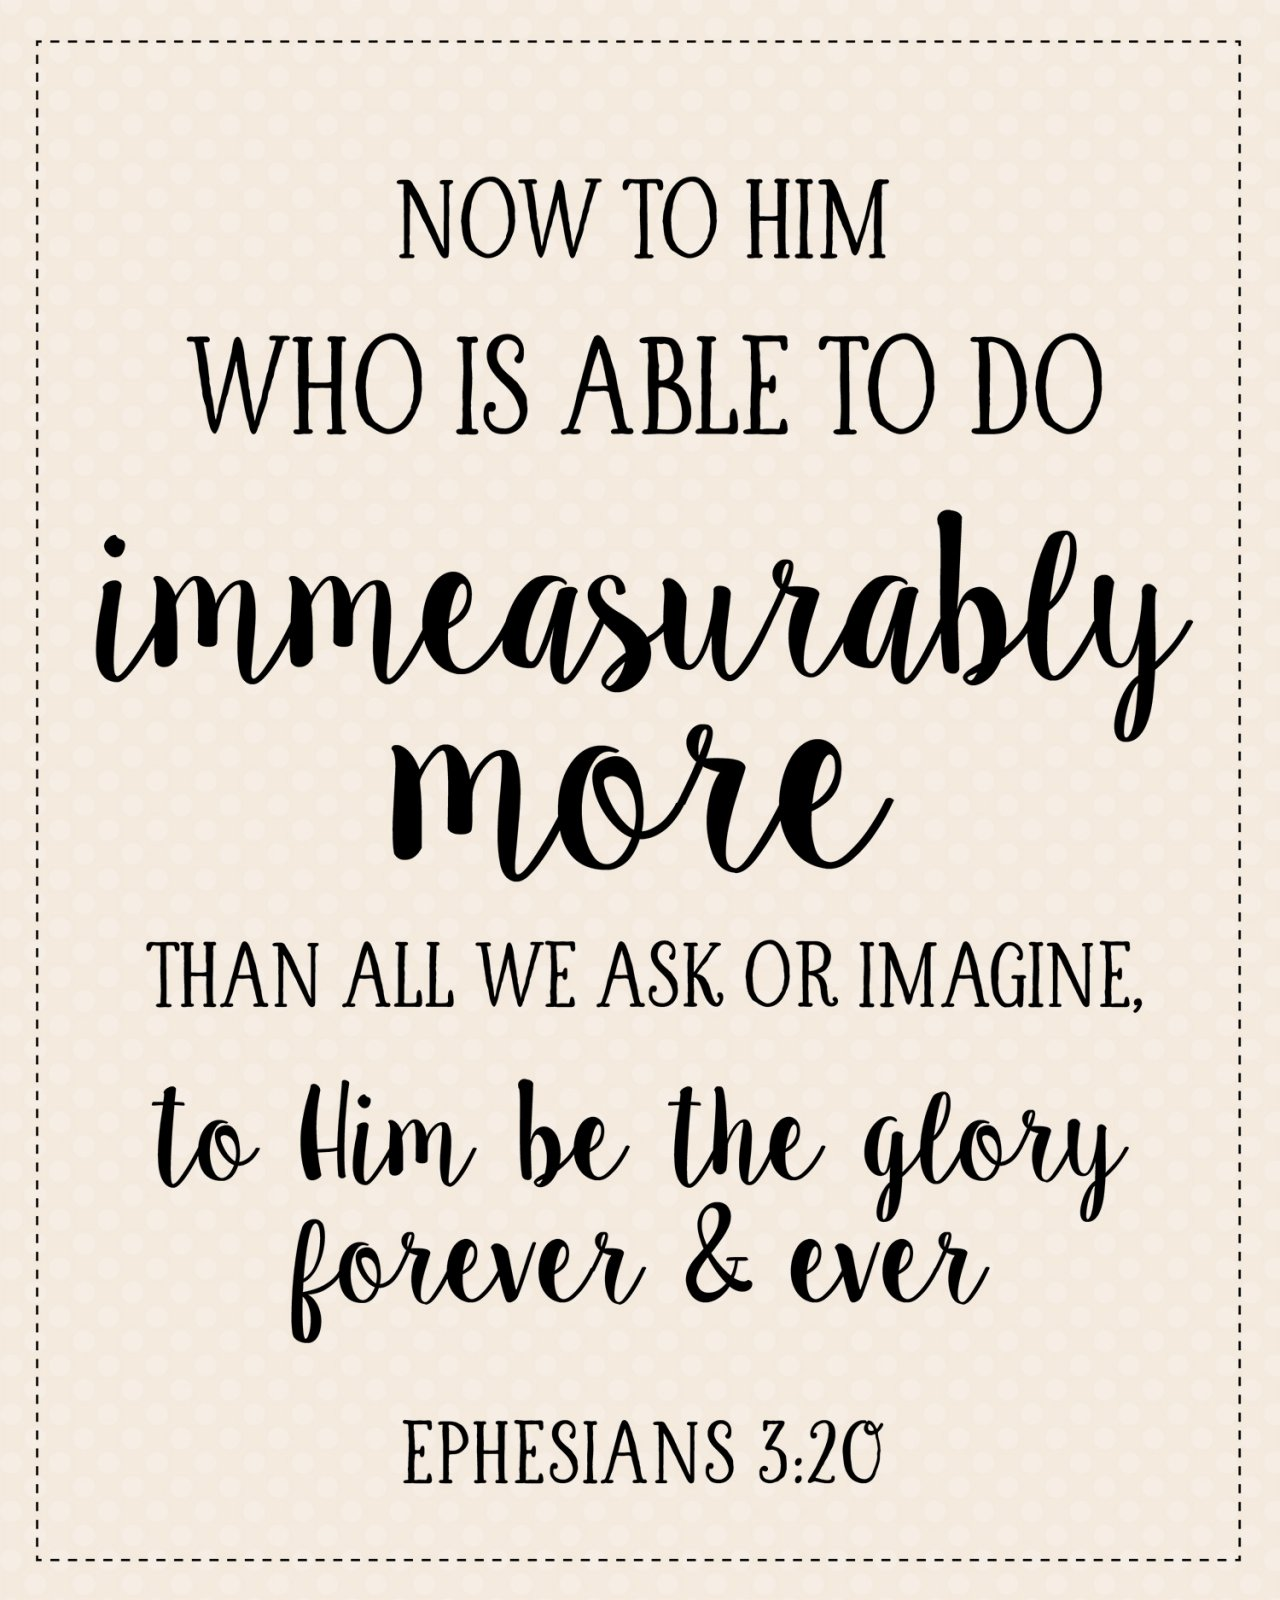 S-4: Now to Him who is able...